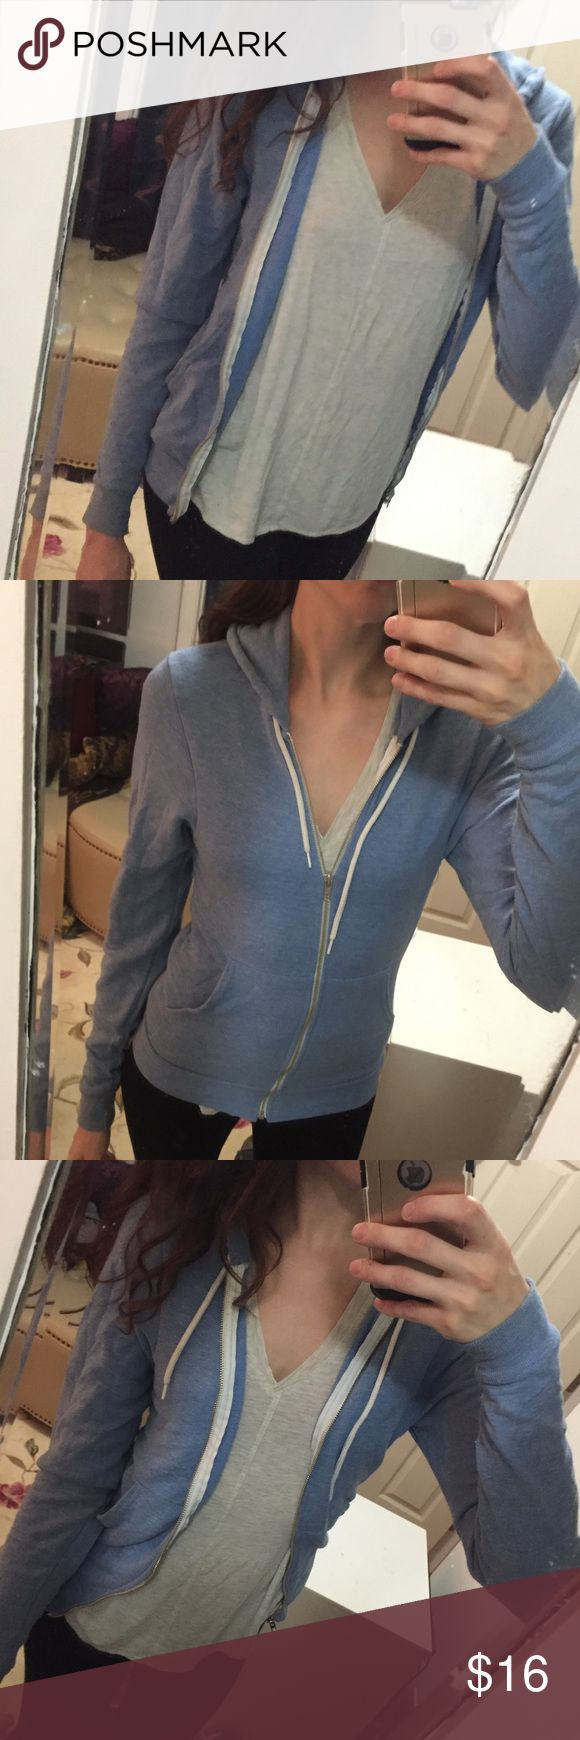 American Apparel zip up hoodie jack Blue heathered zip up hoodie from American Apparel. Worn a few times but in good condition. Has a dingy sleeve that needs some stain removal, but I didn't even notice it until I went to list it. American Apparel Jackets & Coats